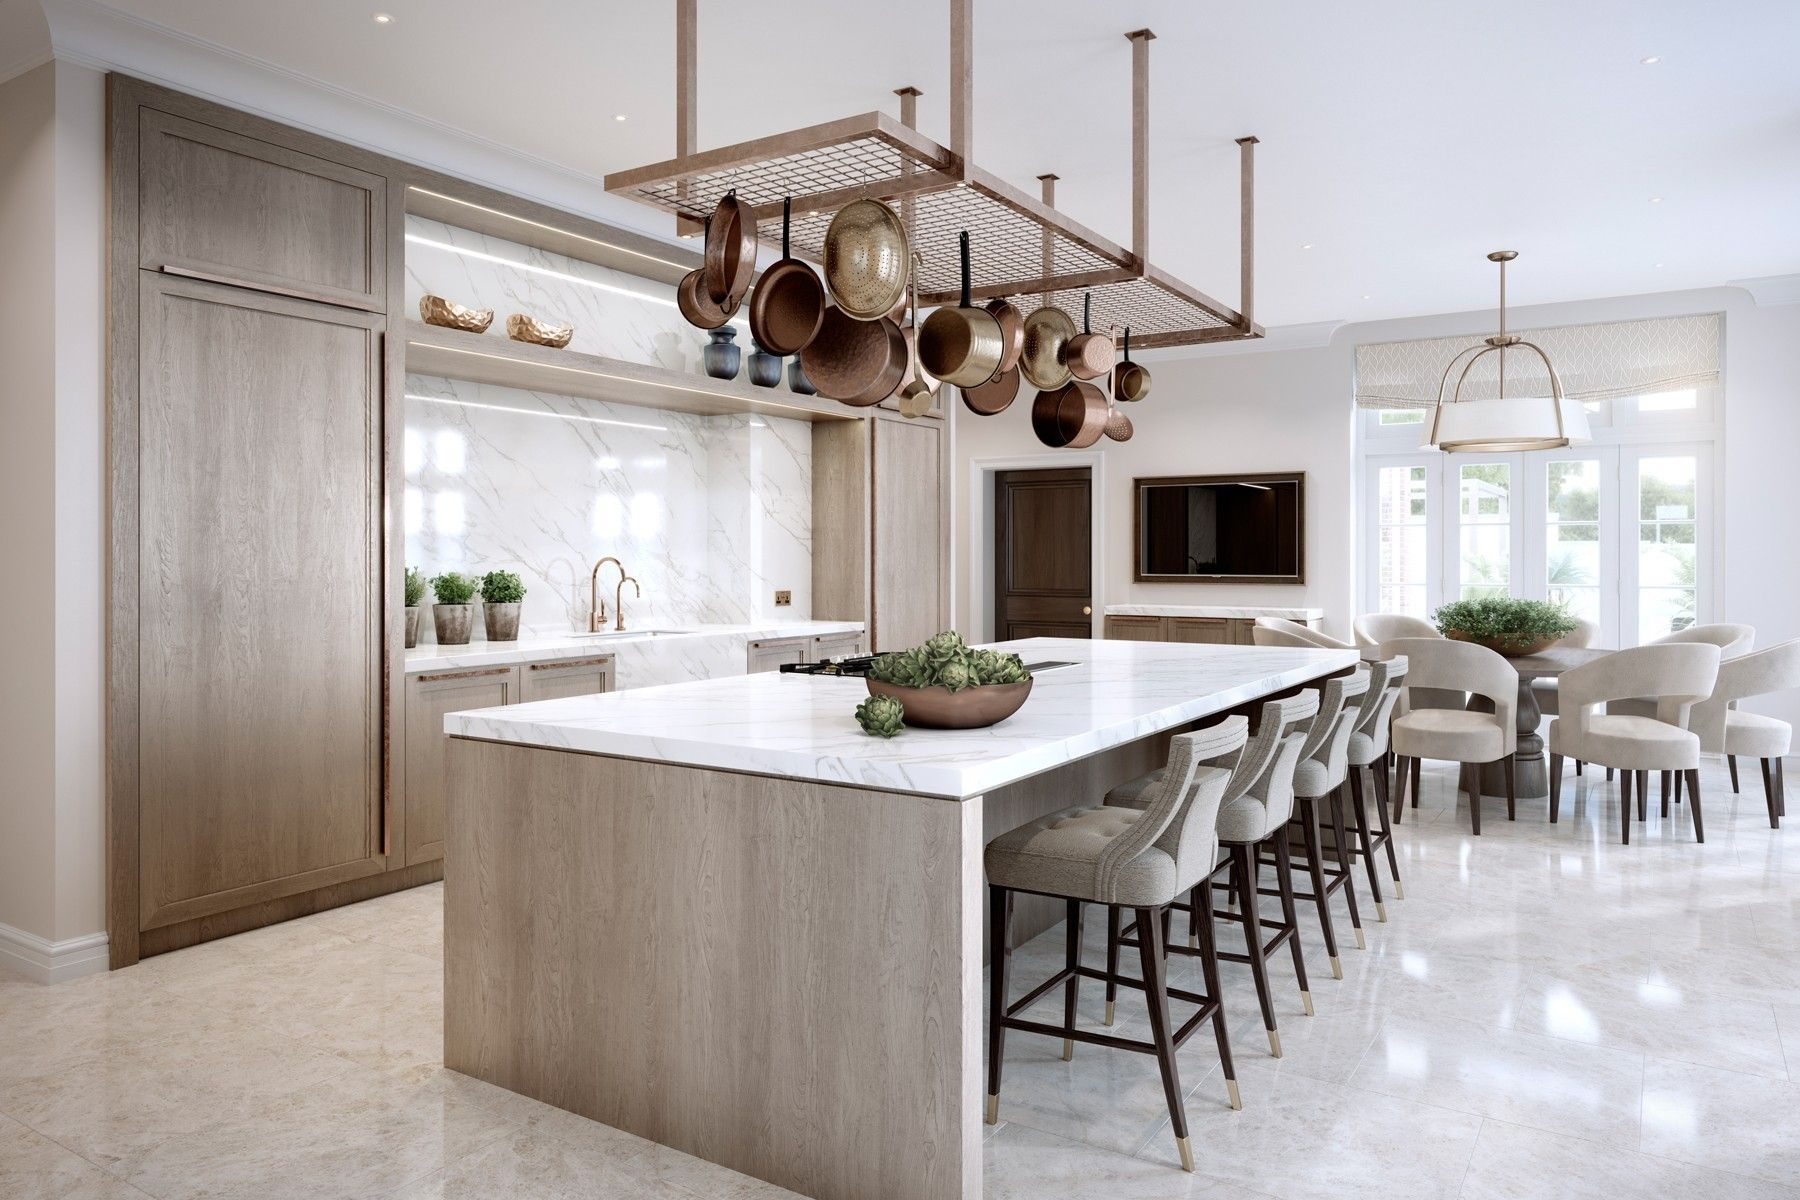 Luxury Modern Kitchen Kitchen Seating Ideas Surrey Family Home Luxury Interior